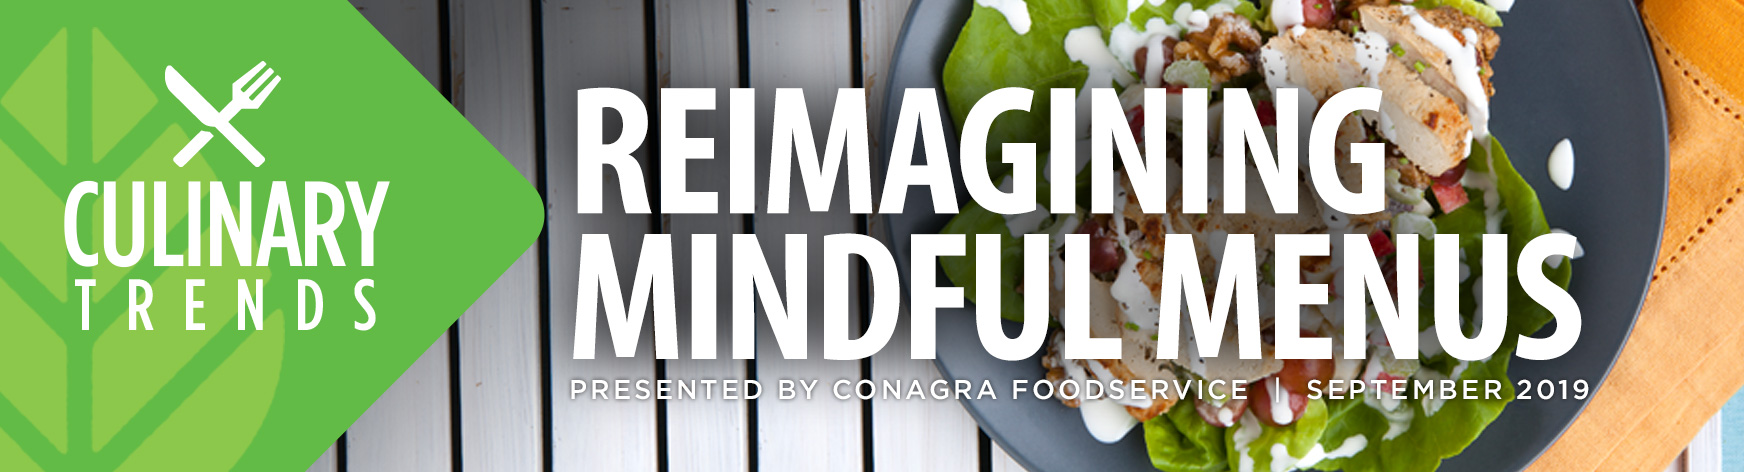 Culinary Trends: Reimagining Mindful Menus Presented by Conagra Foodservice